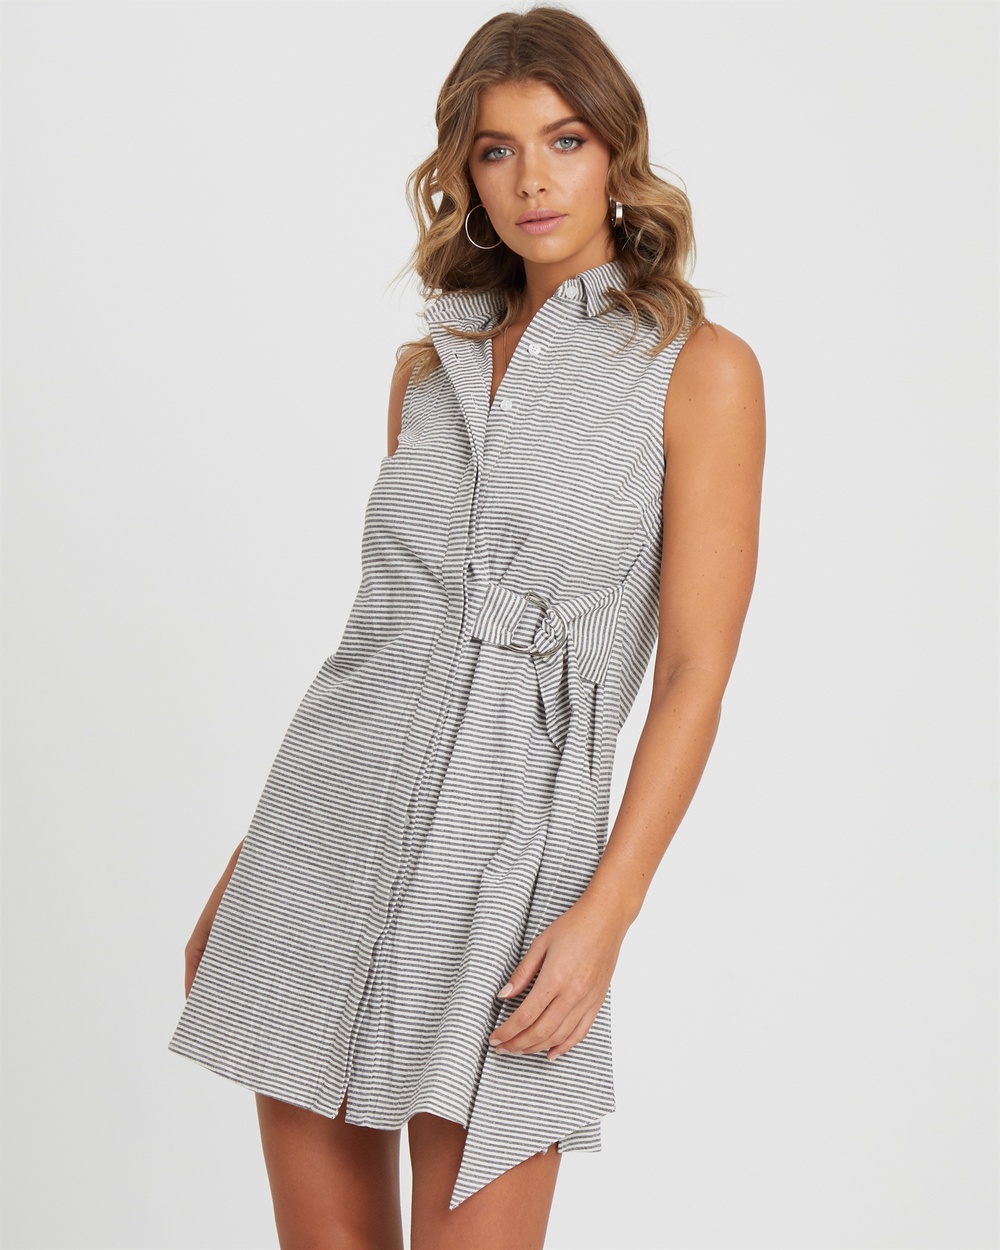 Photo of Atmos & Here Grey/ White Stripe Buckle Detail Shirt Dress - beautiful dress from Atmos & Here online